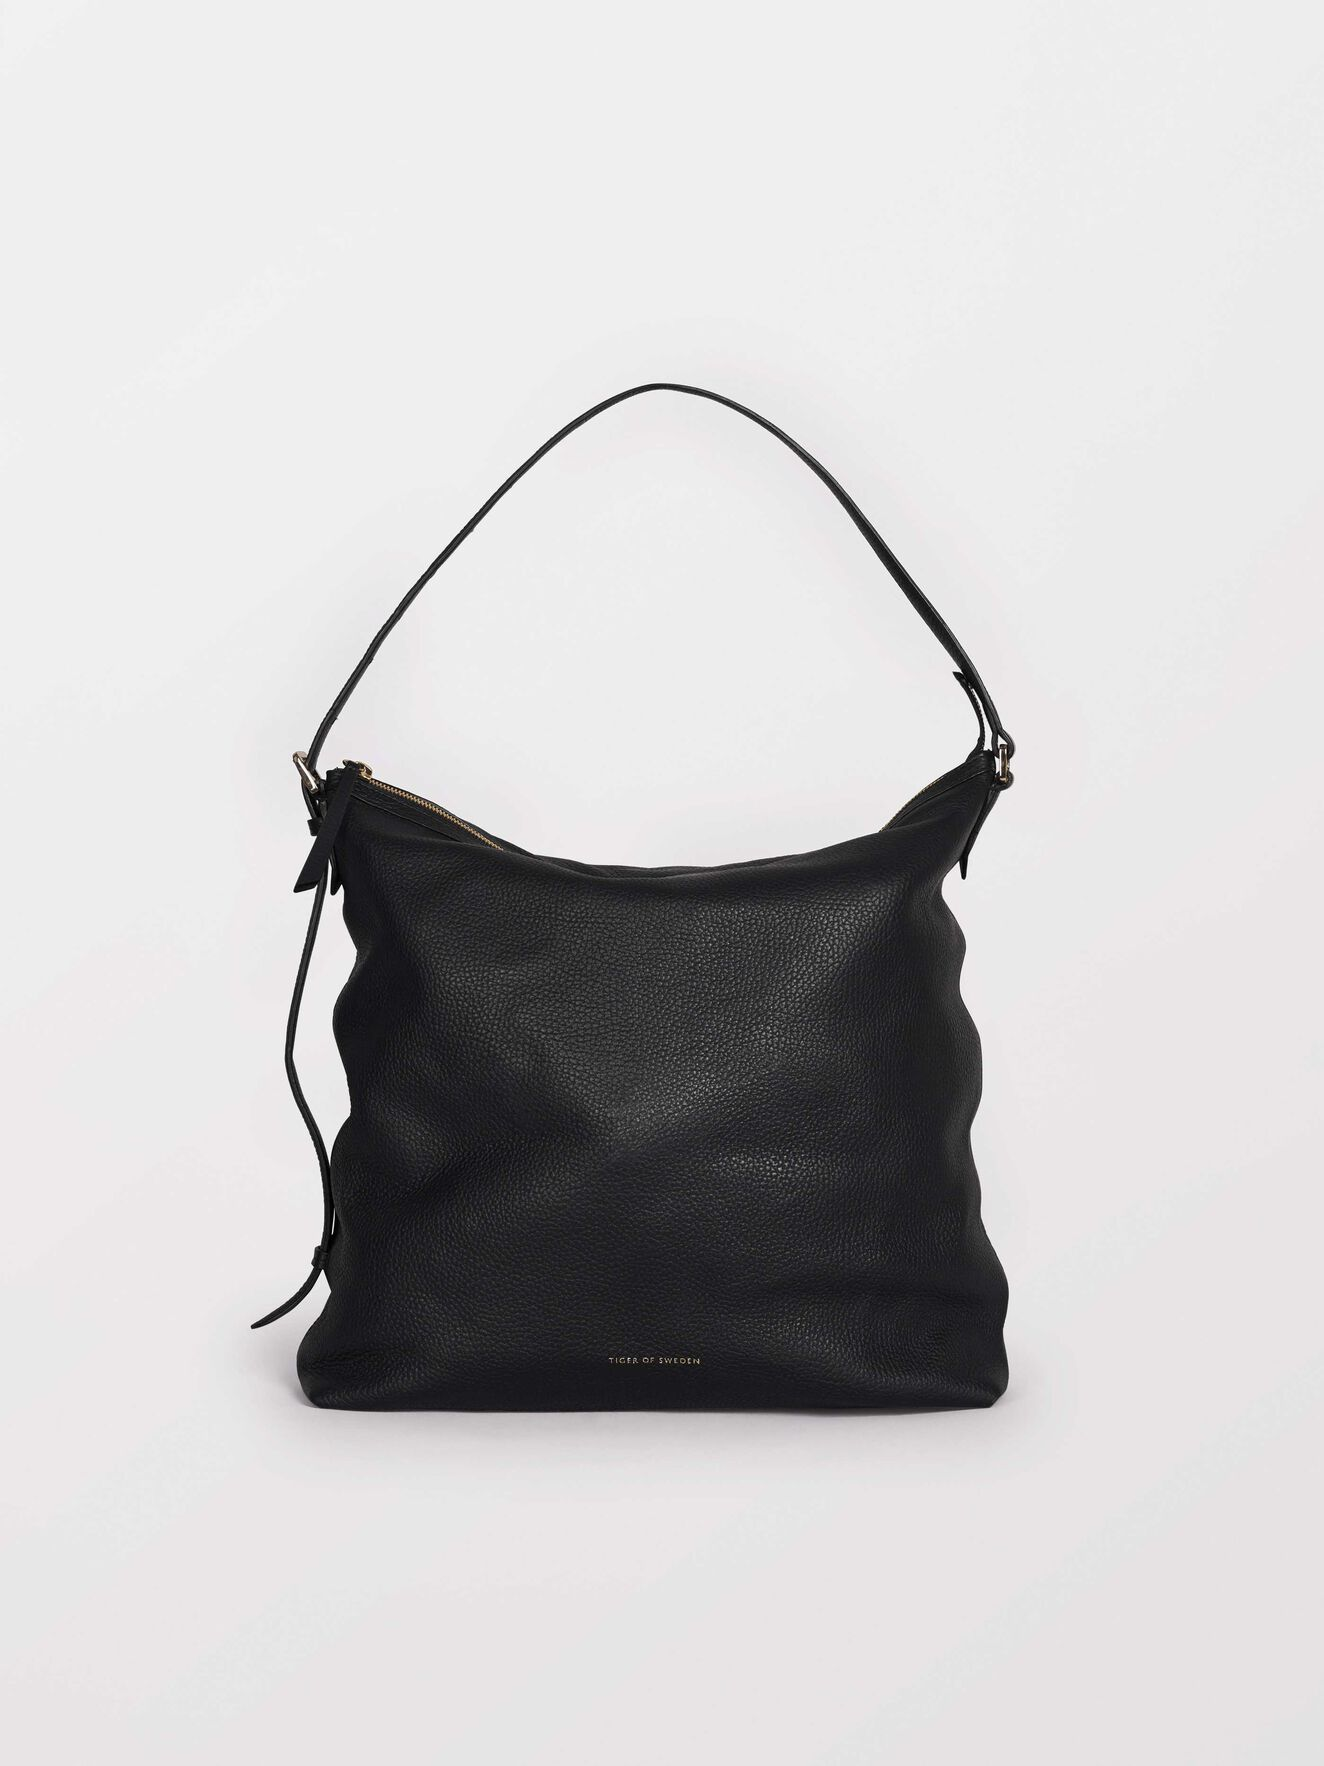 Bahobo Bag in Black from Tiger of Sweden